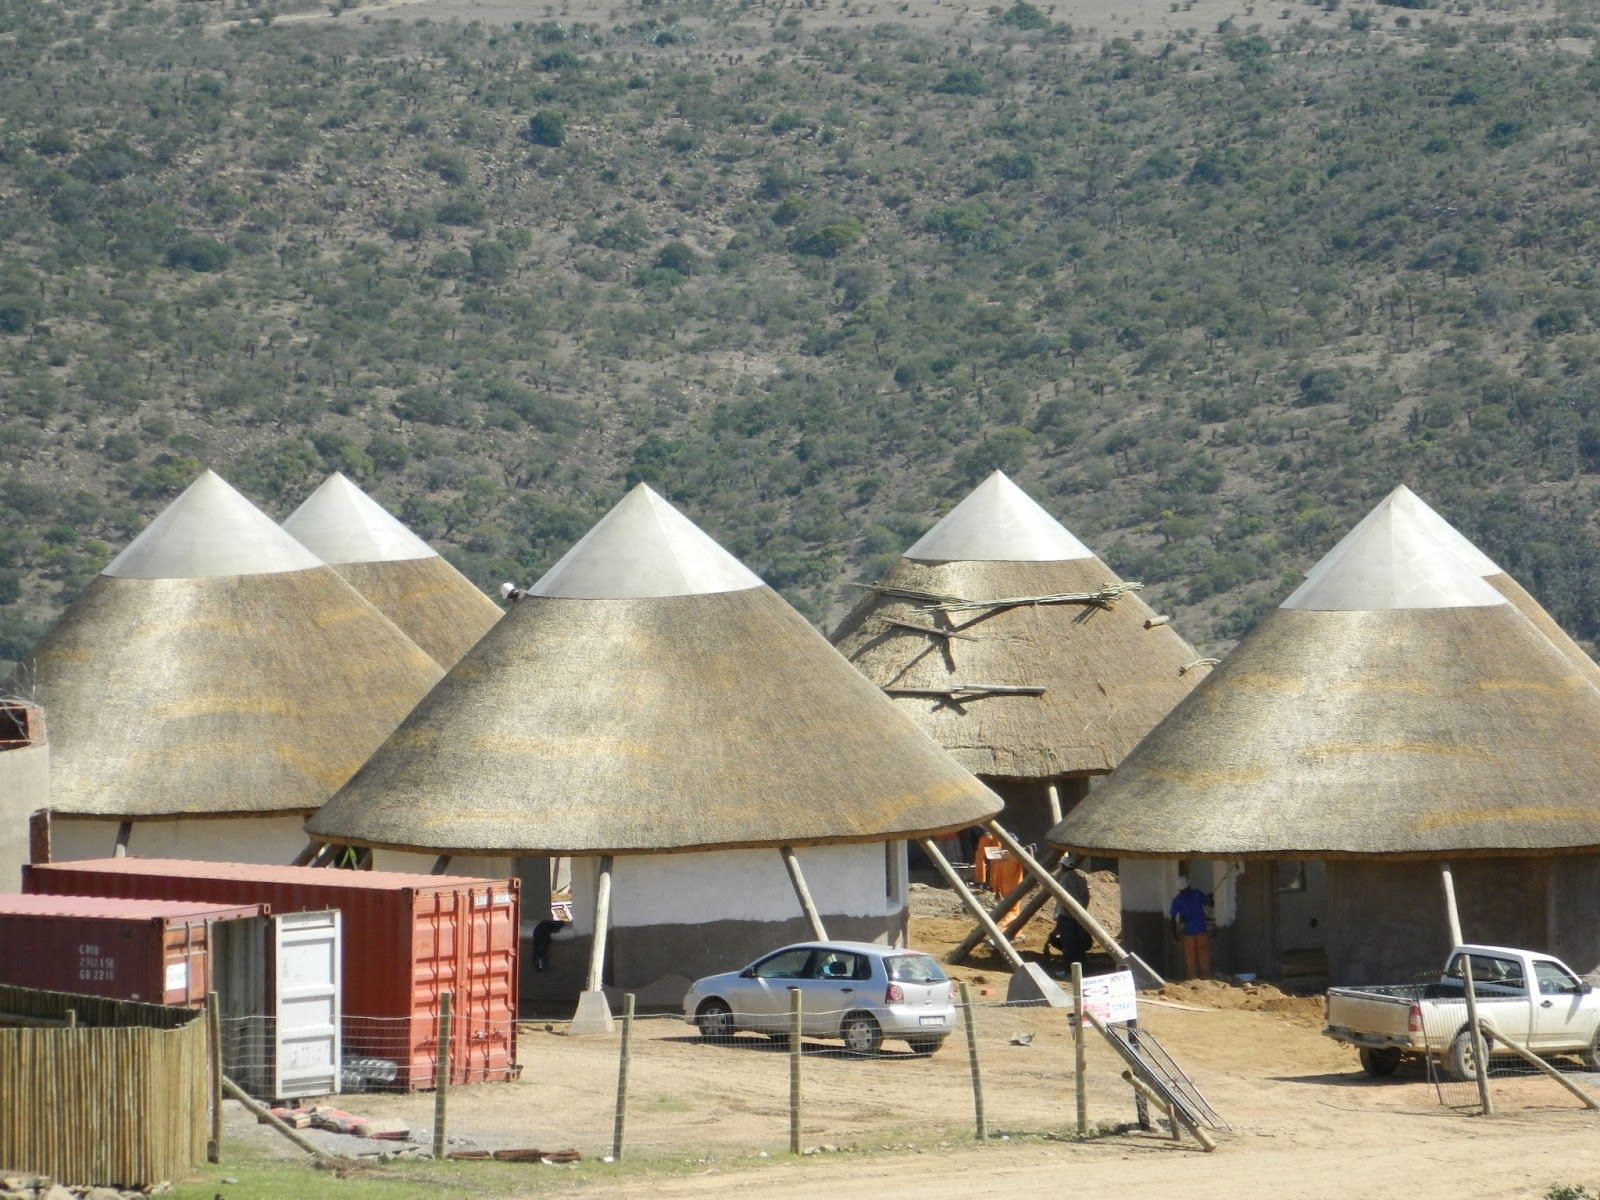 Modern rondavels with fiberglass capping for light in mvezo eastern cape of south africa